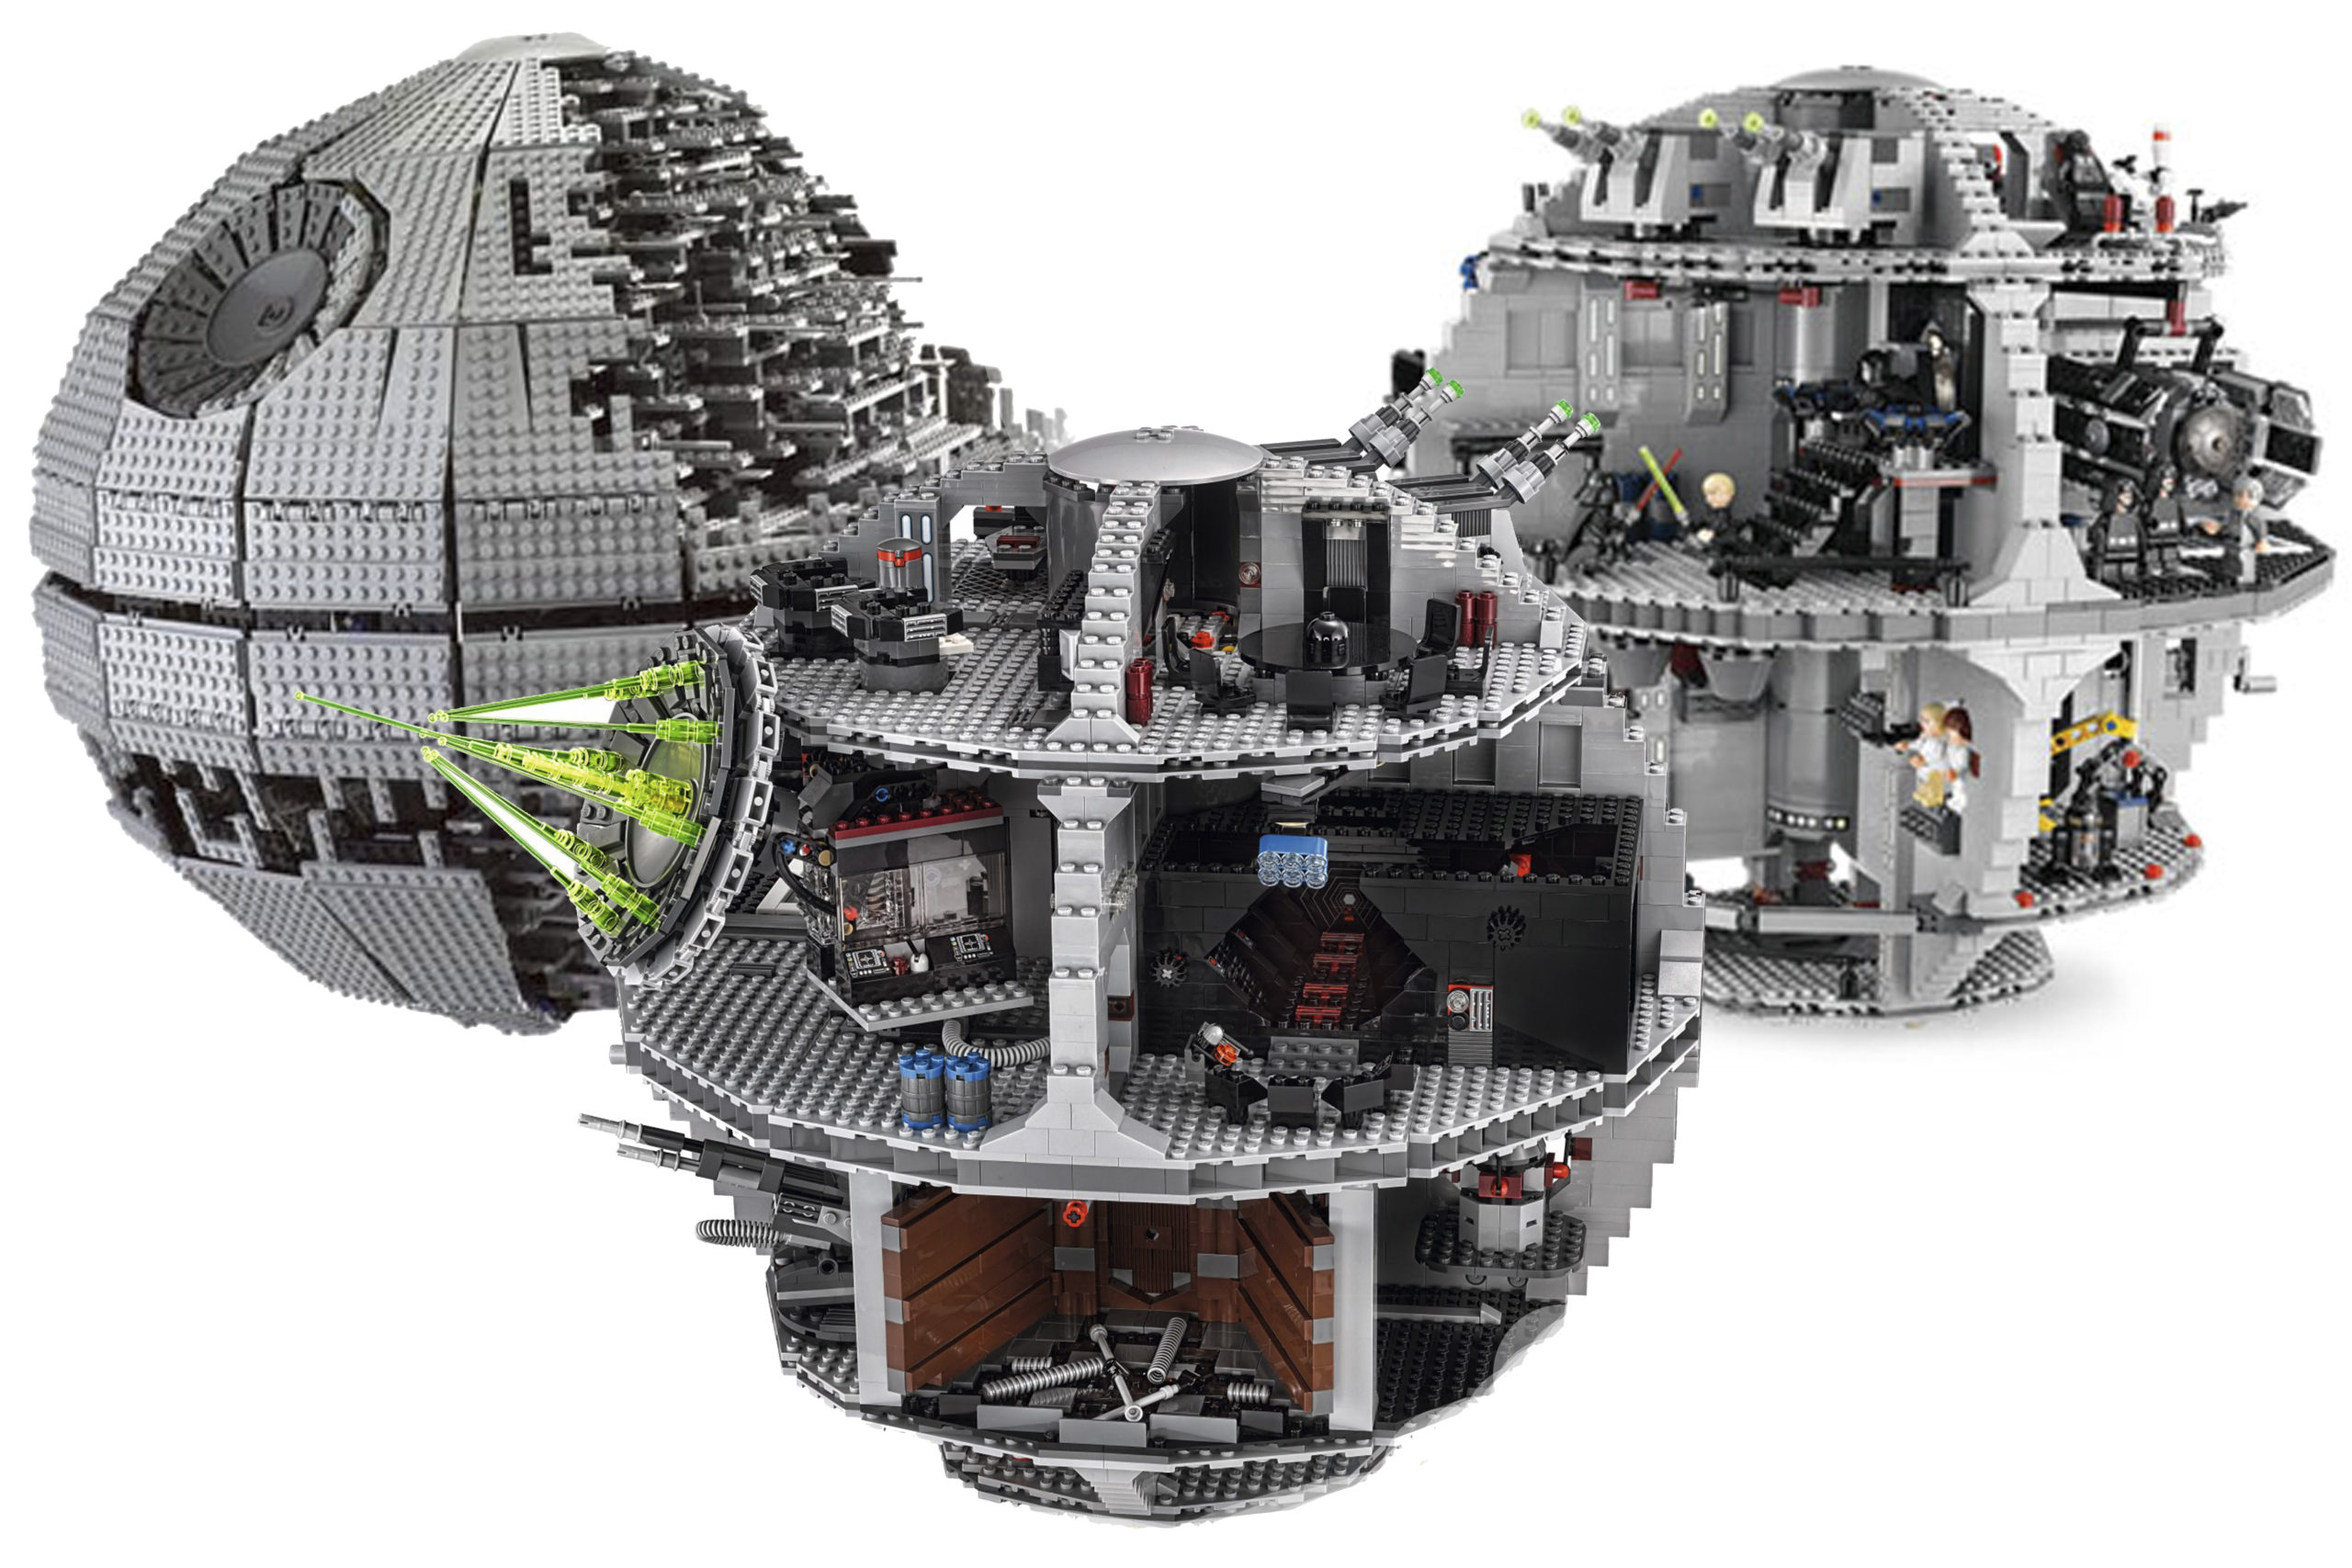 LEGO Death Star - which one is better? - All 3